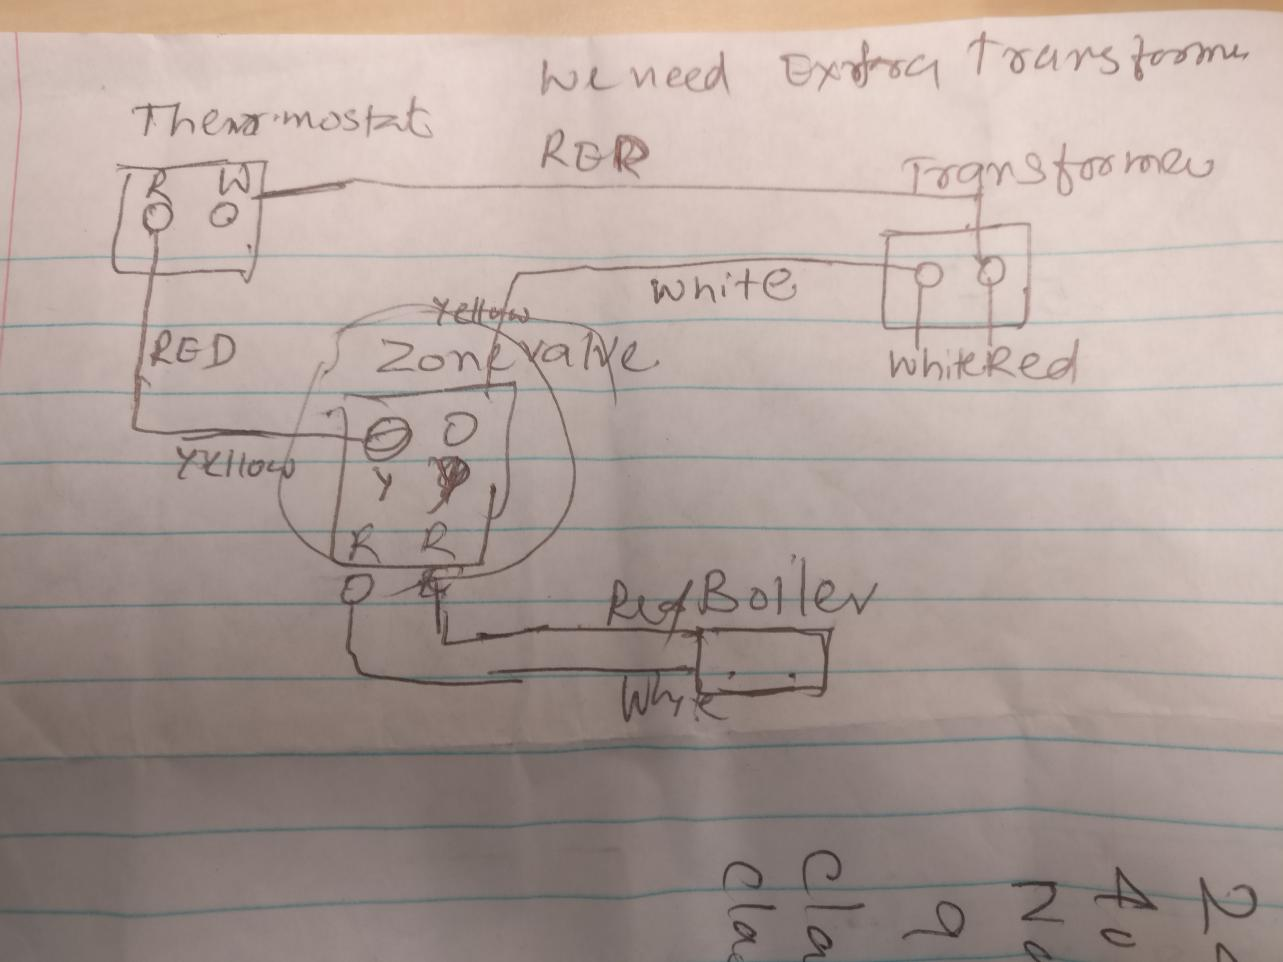 Weil Mclain Wiring Diagram - Do you want to download wiring ... on warn winch control box diagram, warn solenoid diagram, warn parts diagram, warn winch wiring, warn winch solenoid problems, warn wireless control diagram, warn 8274 diagram,